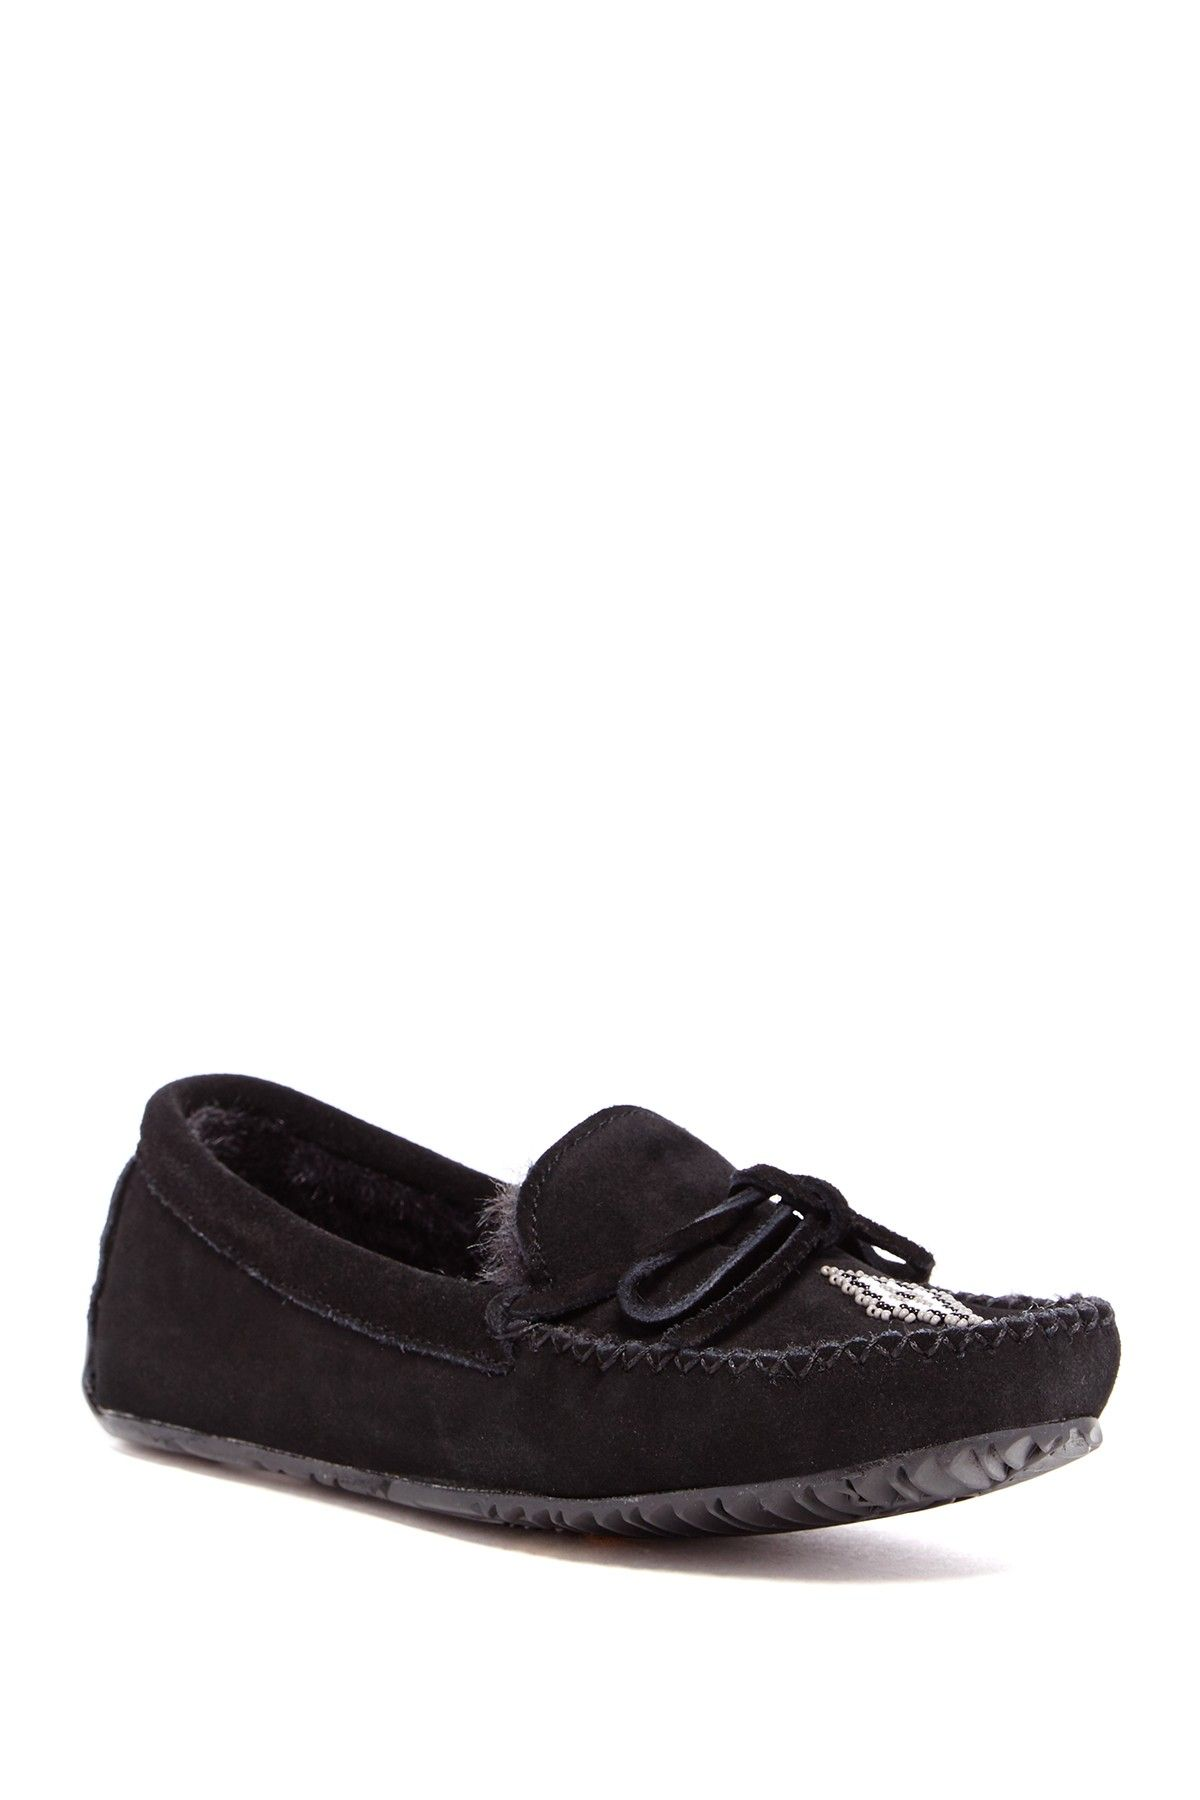 Canoe Faux Fur Lined Moccasin